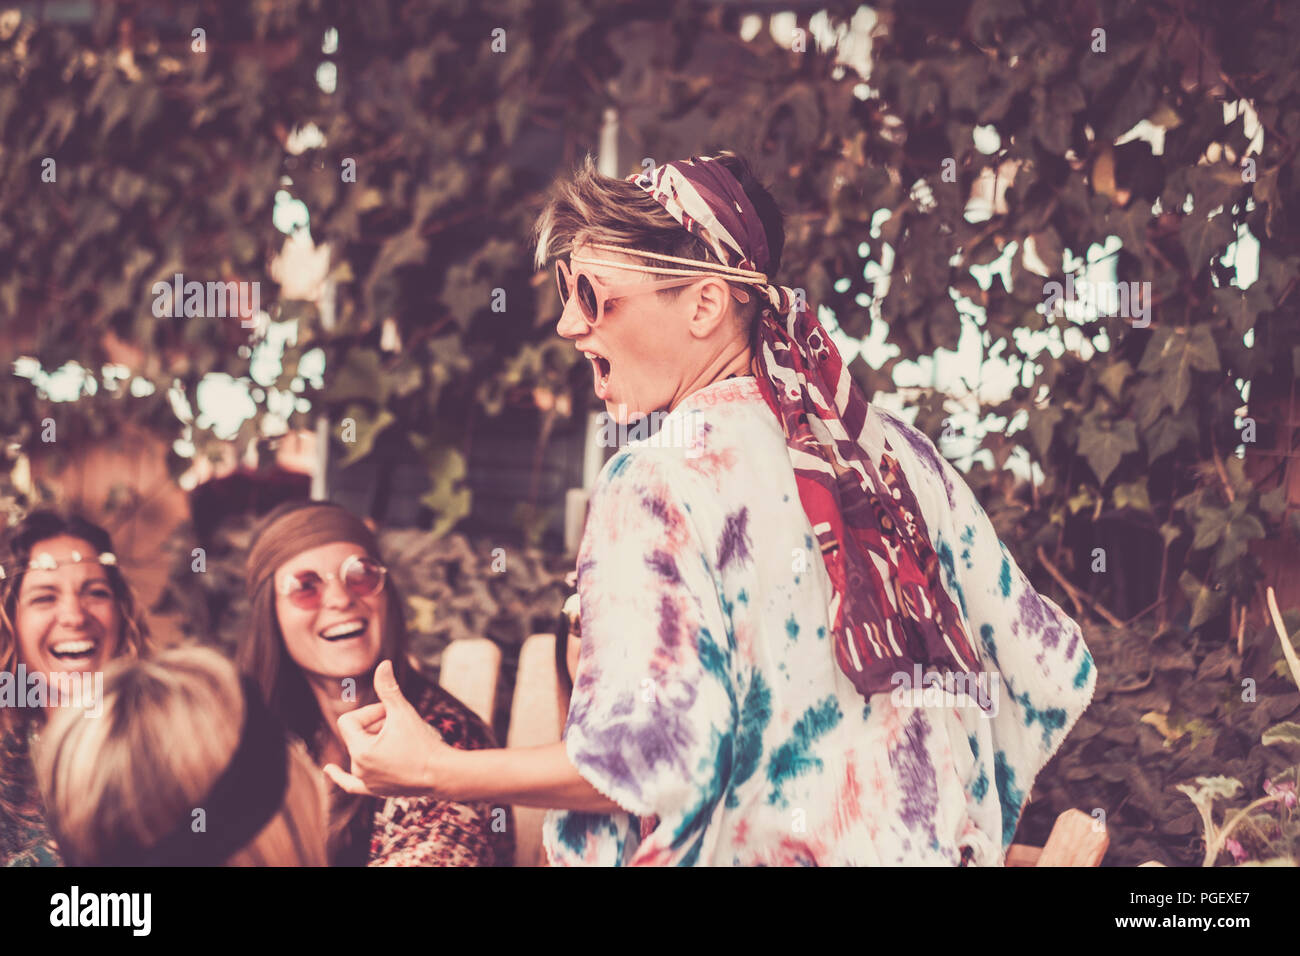 crazy blonde young woman and girls in friendship all together celebrating and having fun in a bio natural place. smiles and laughing for group of hipp - Stock Image